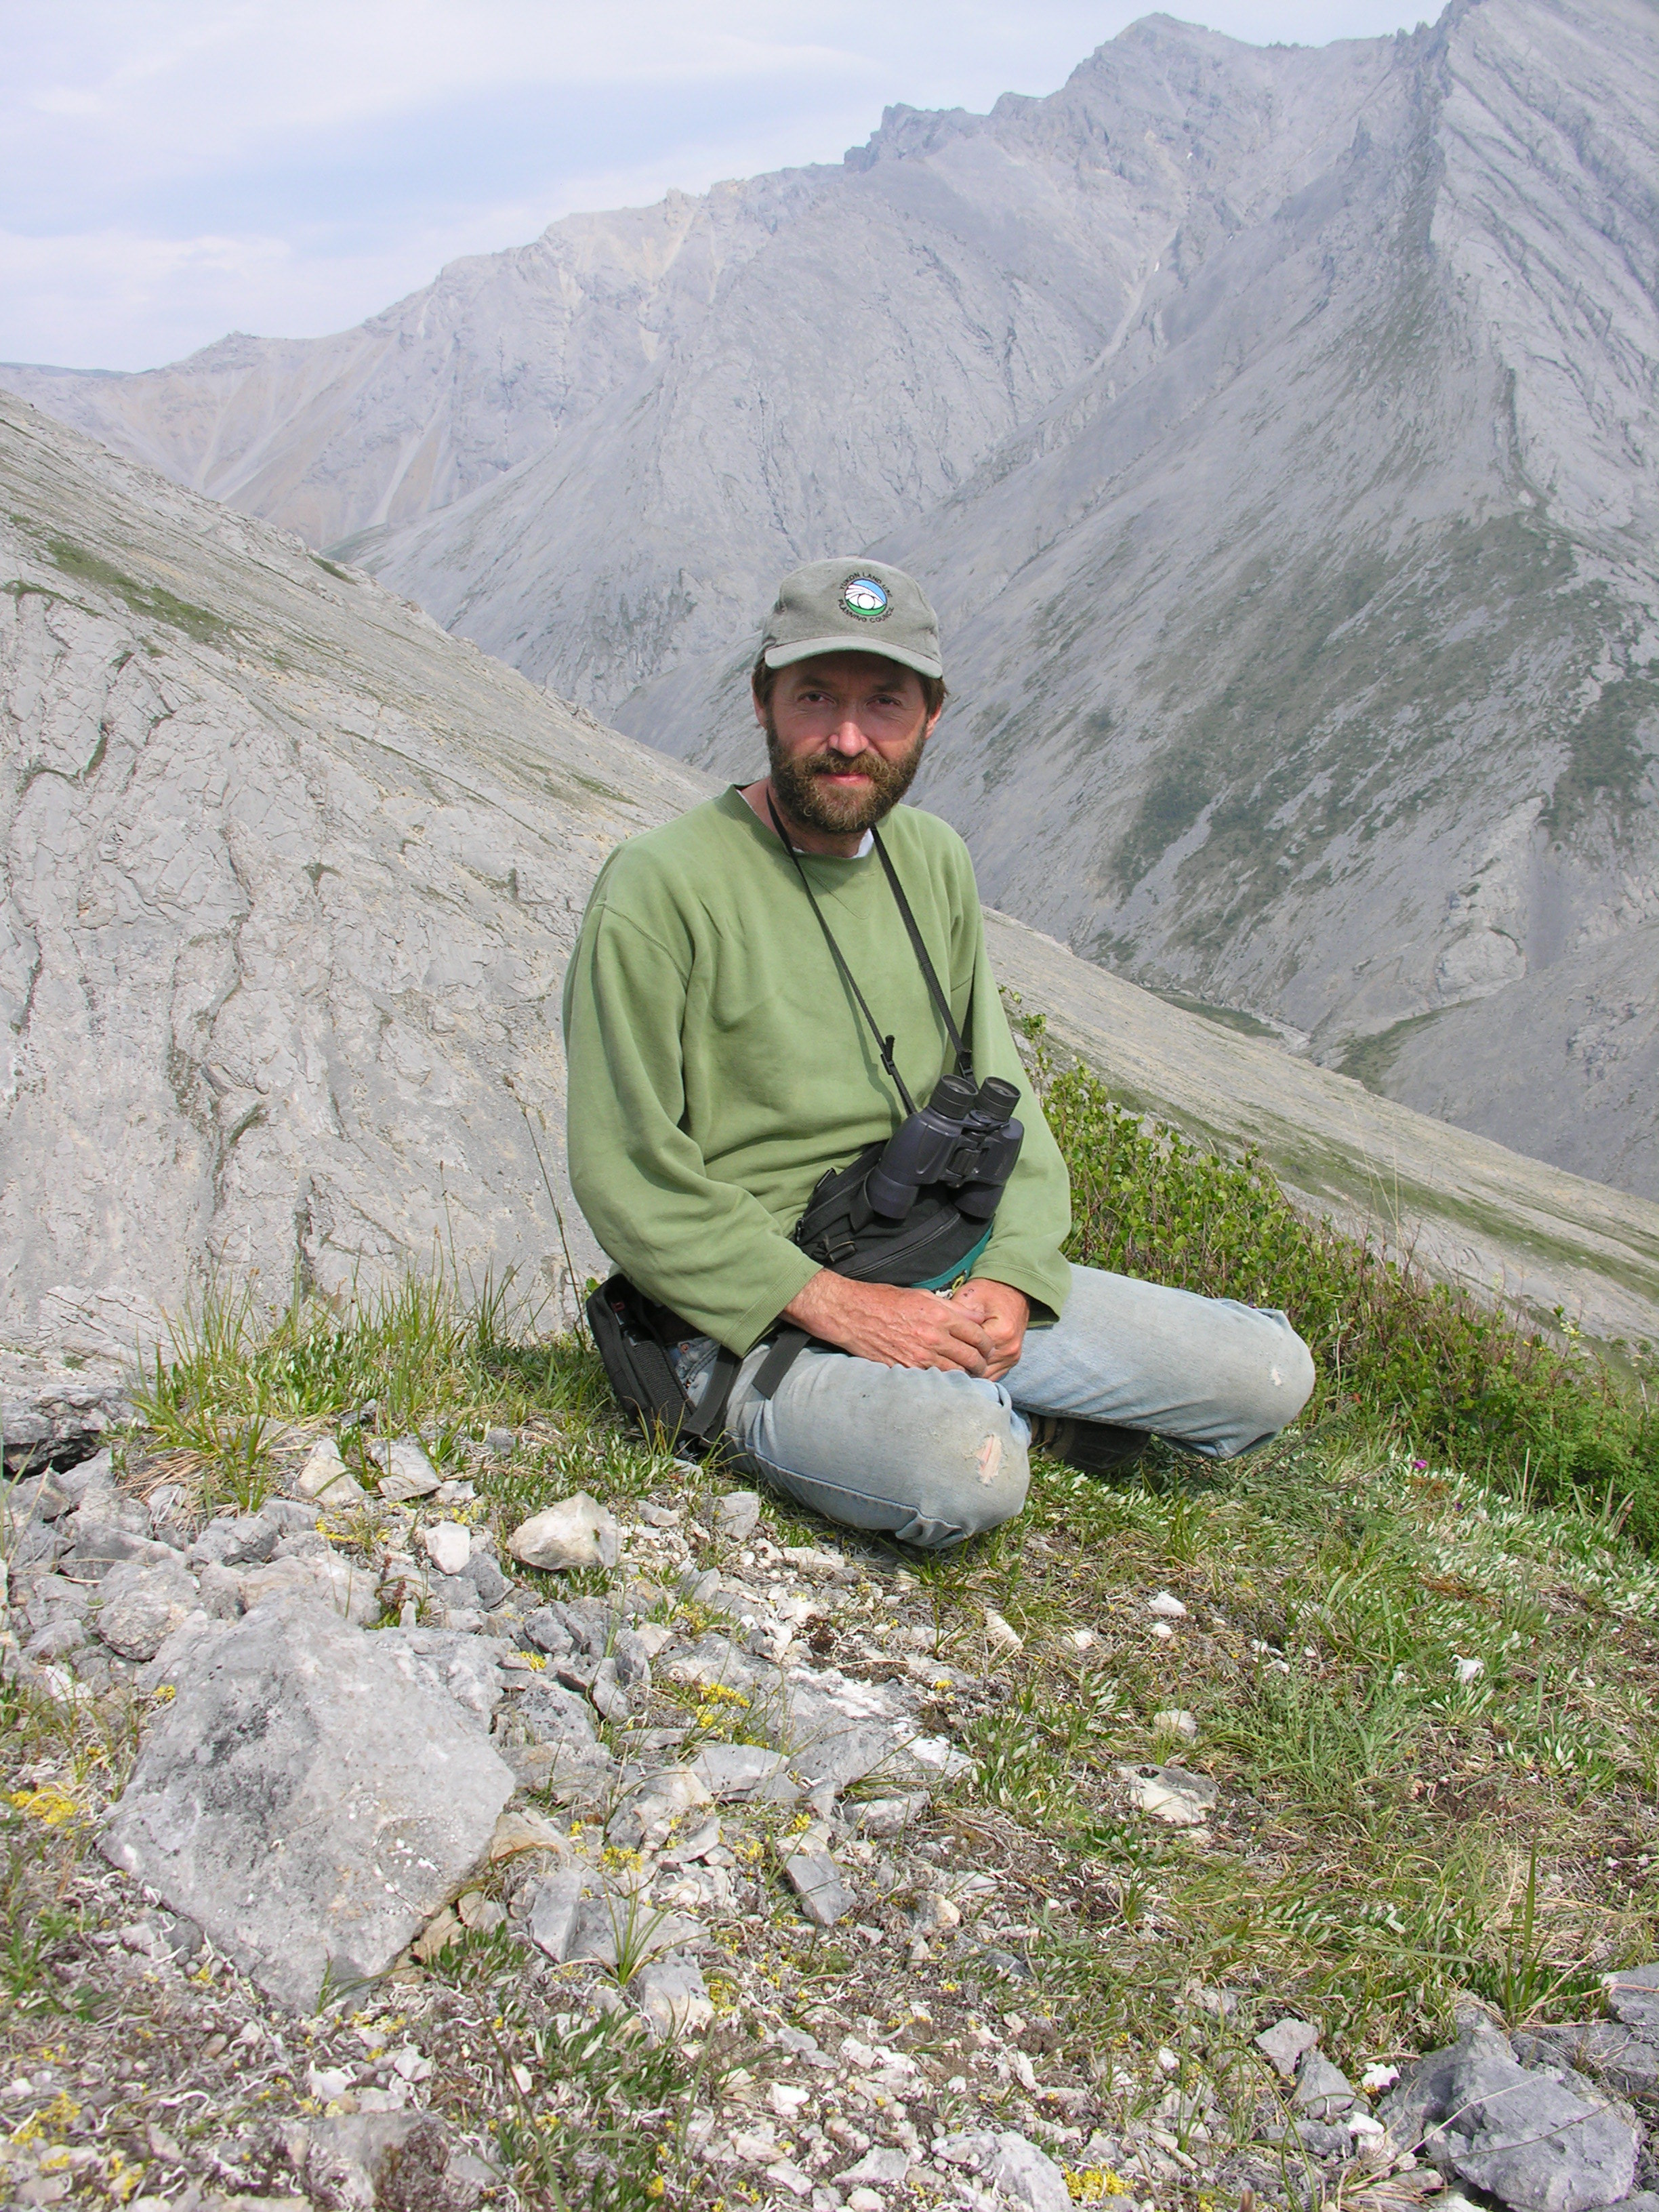 Yukon biologist Mark O'Donoghue says the increased growth of shrubs due to climate change is attracting moose into what used to be primarily caribou habitat. (Submitted by Mark O'Donoghue)